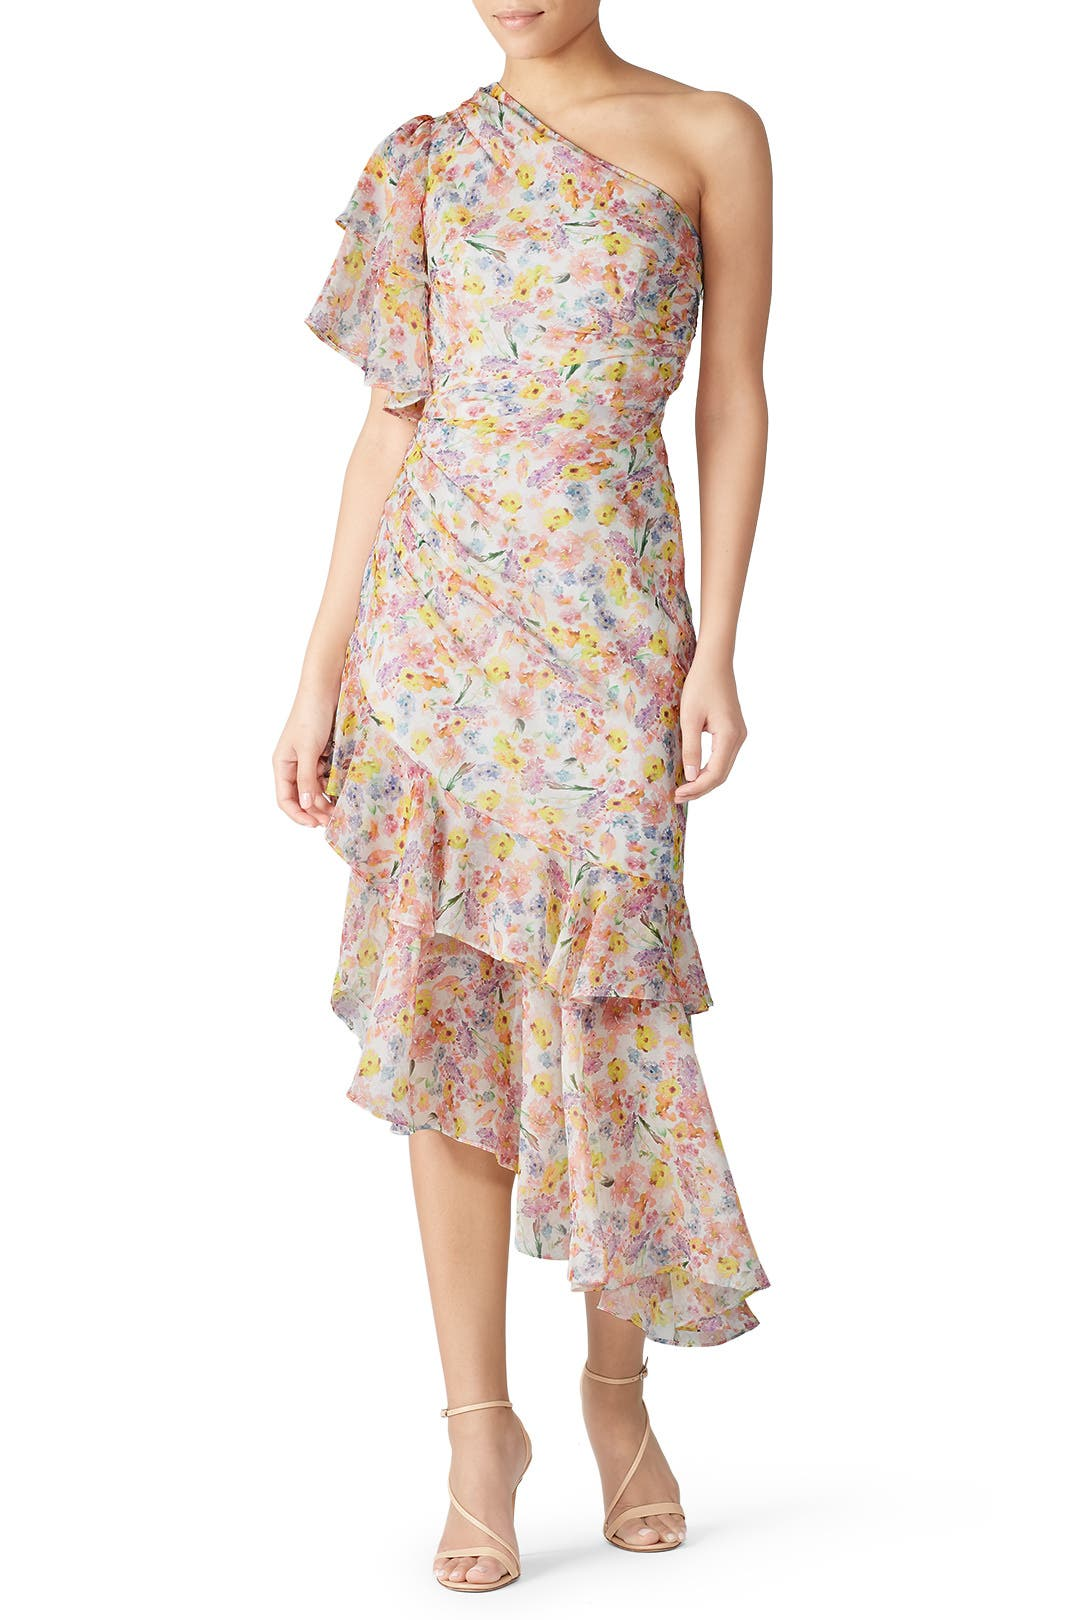 wholesale biggest discount purchase cheap Clayton Dress by AMUR for $75 - $90   Rent the Runway